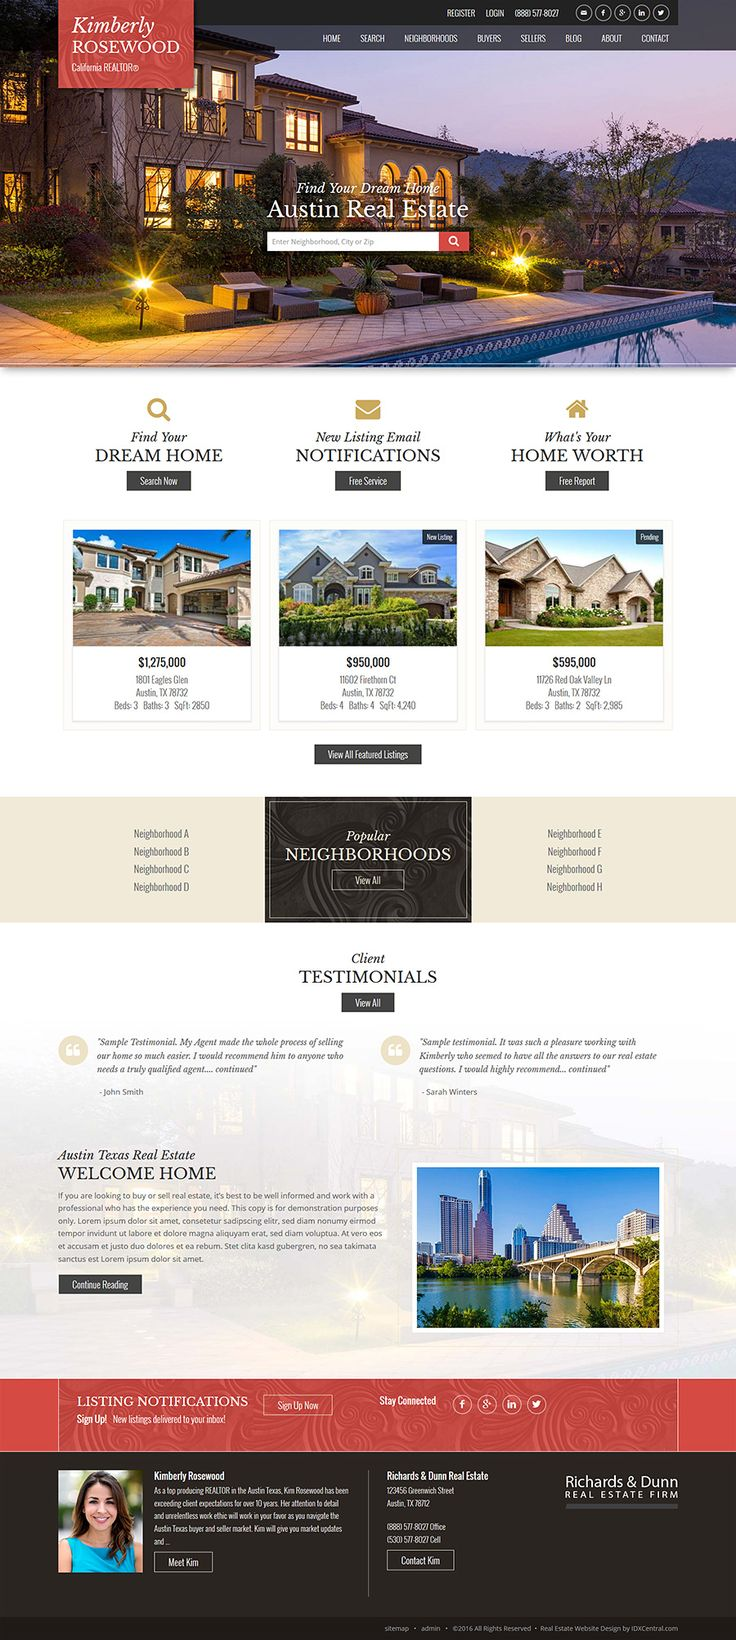 Semi Custom Website Design - Austin - Our Austin Theme in Red with scroll background for an elegant touch. Choose from our selection of responsive real estate website designs built on WordPress. Offering IDX sales and integration, website training and support. Details at www.IDXCentral.com